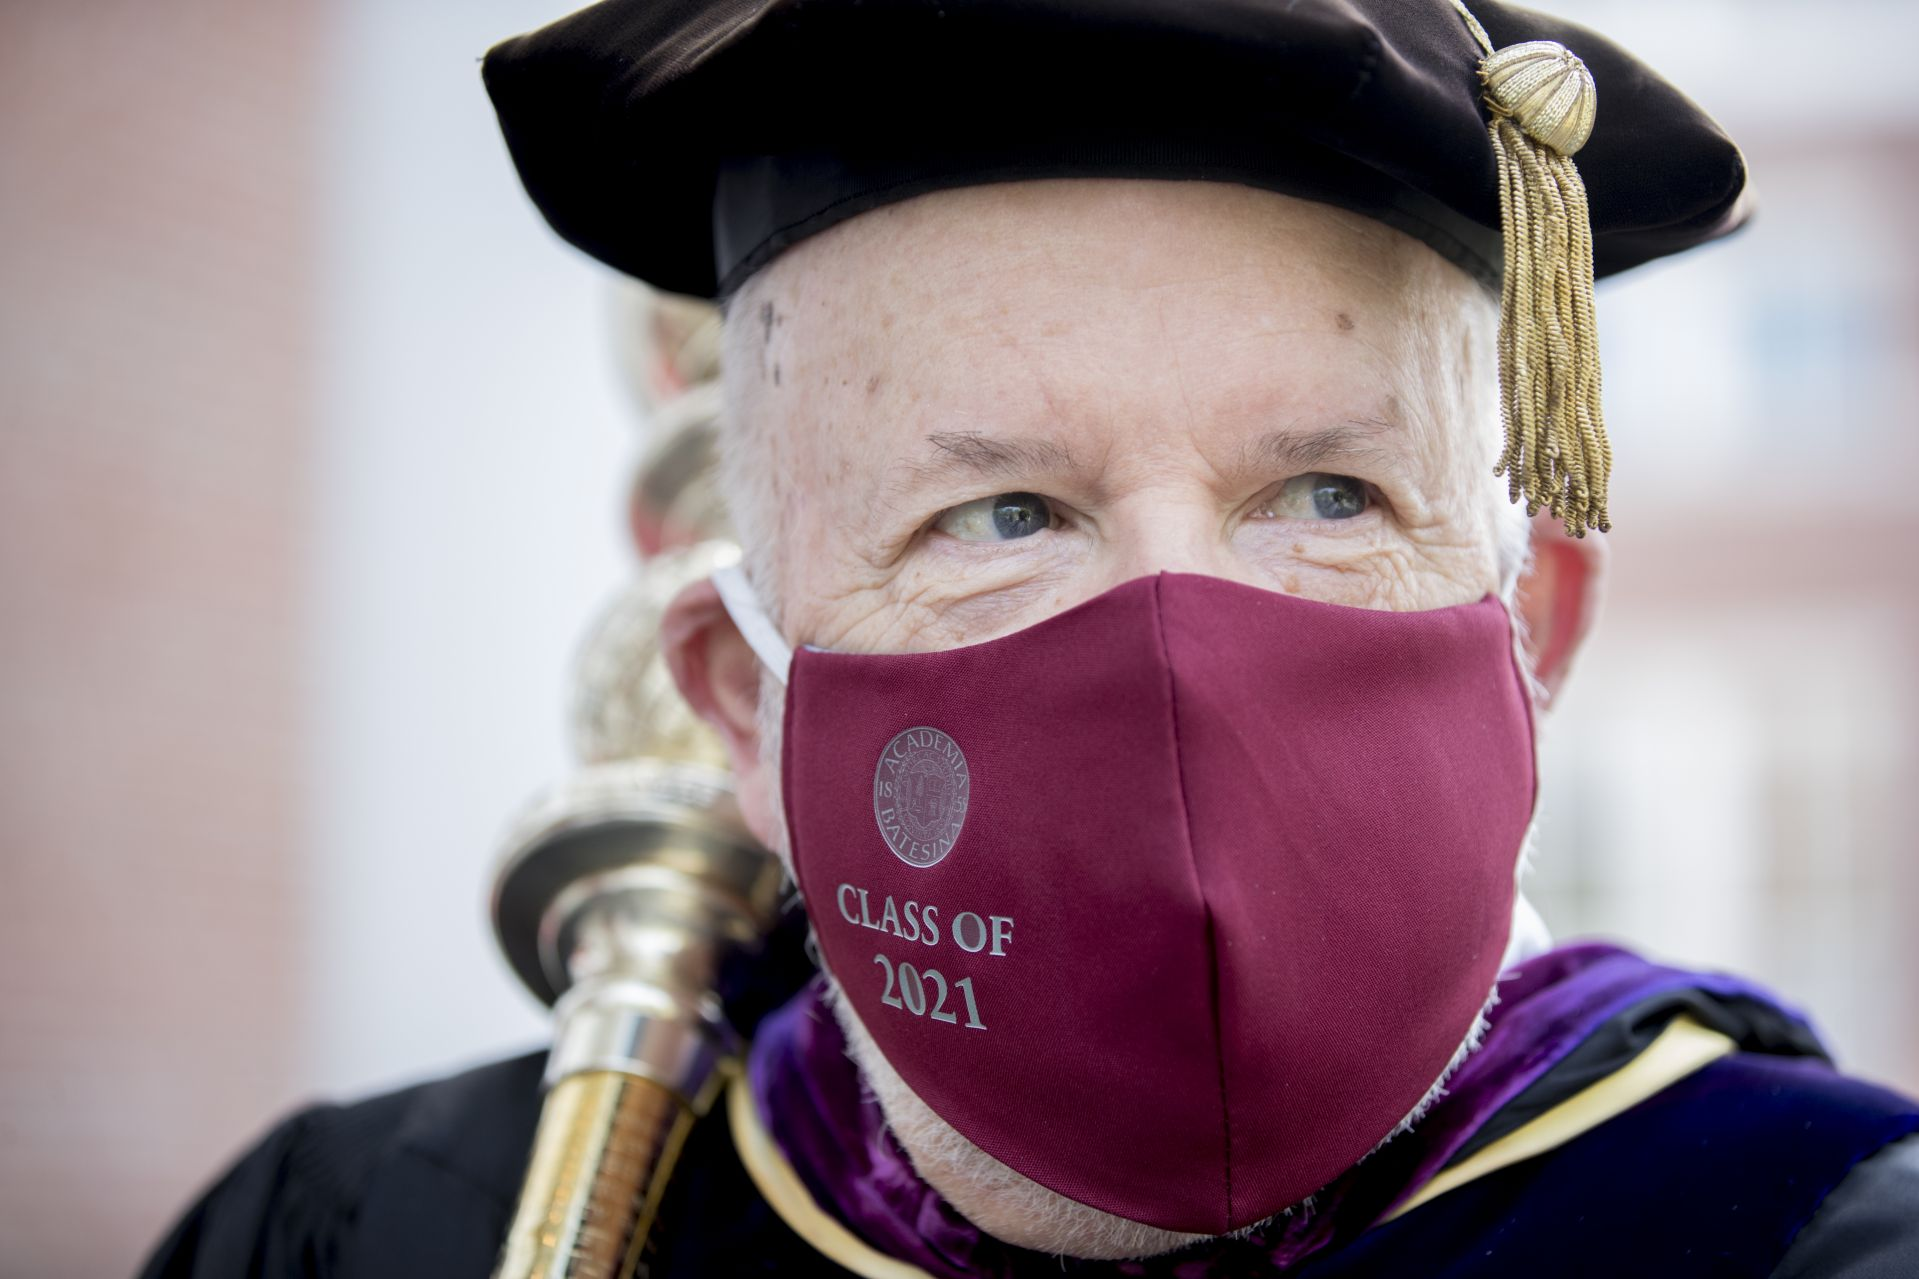 Scenes from the morning Commencement at Bates College on May 27, 2021. (Phyllis Graber Jensen/Bates College)